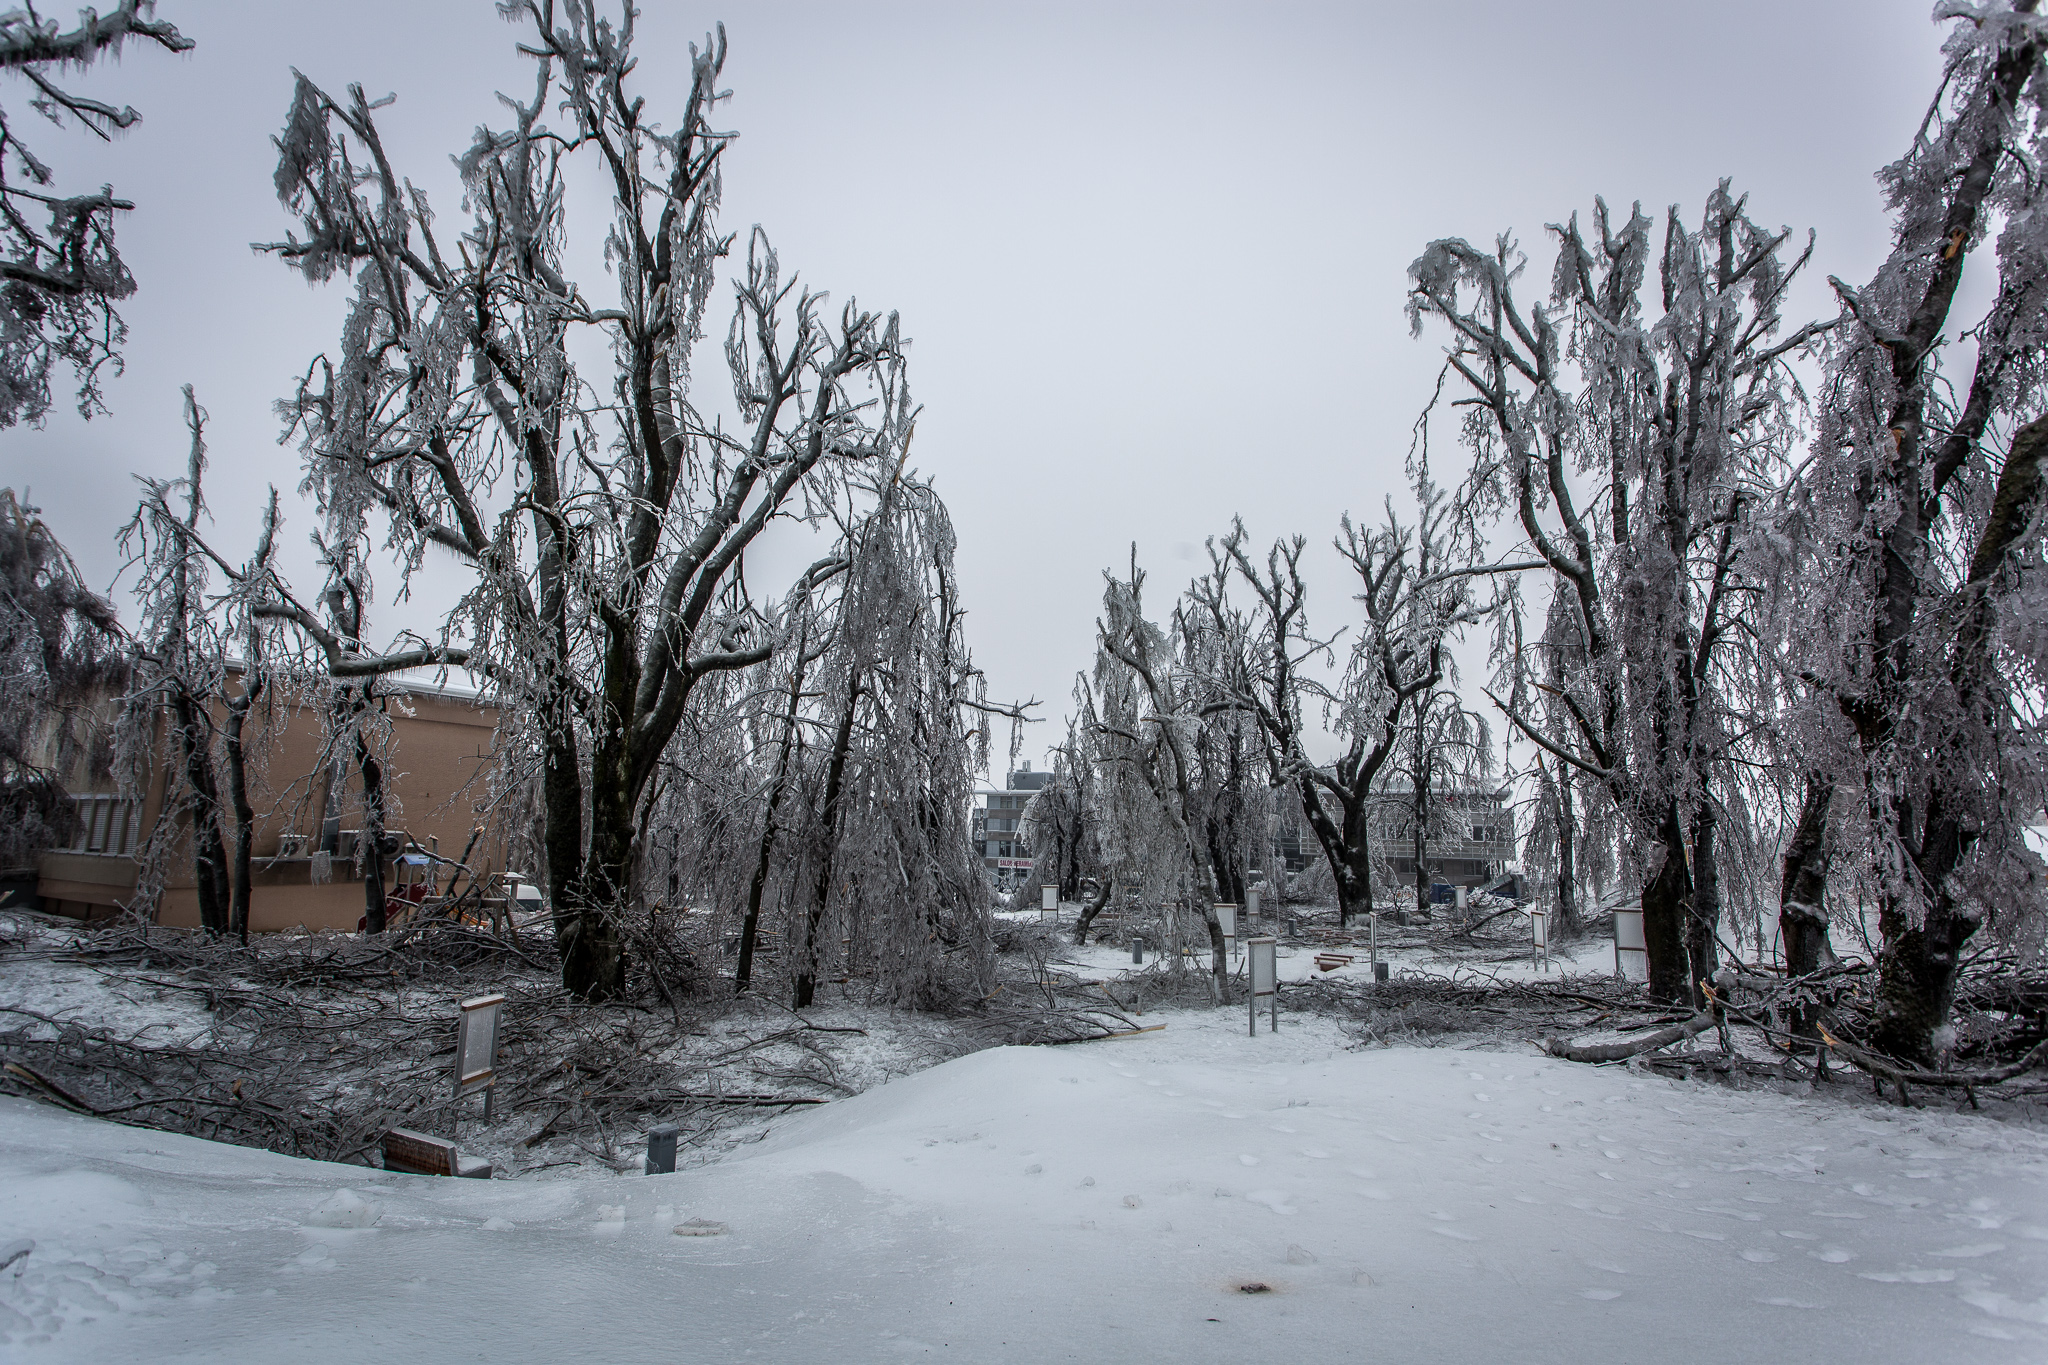 Broken trees in a park, devastated by the weight of ice on the branches.